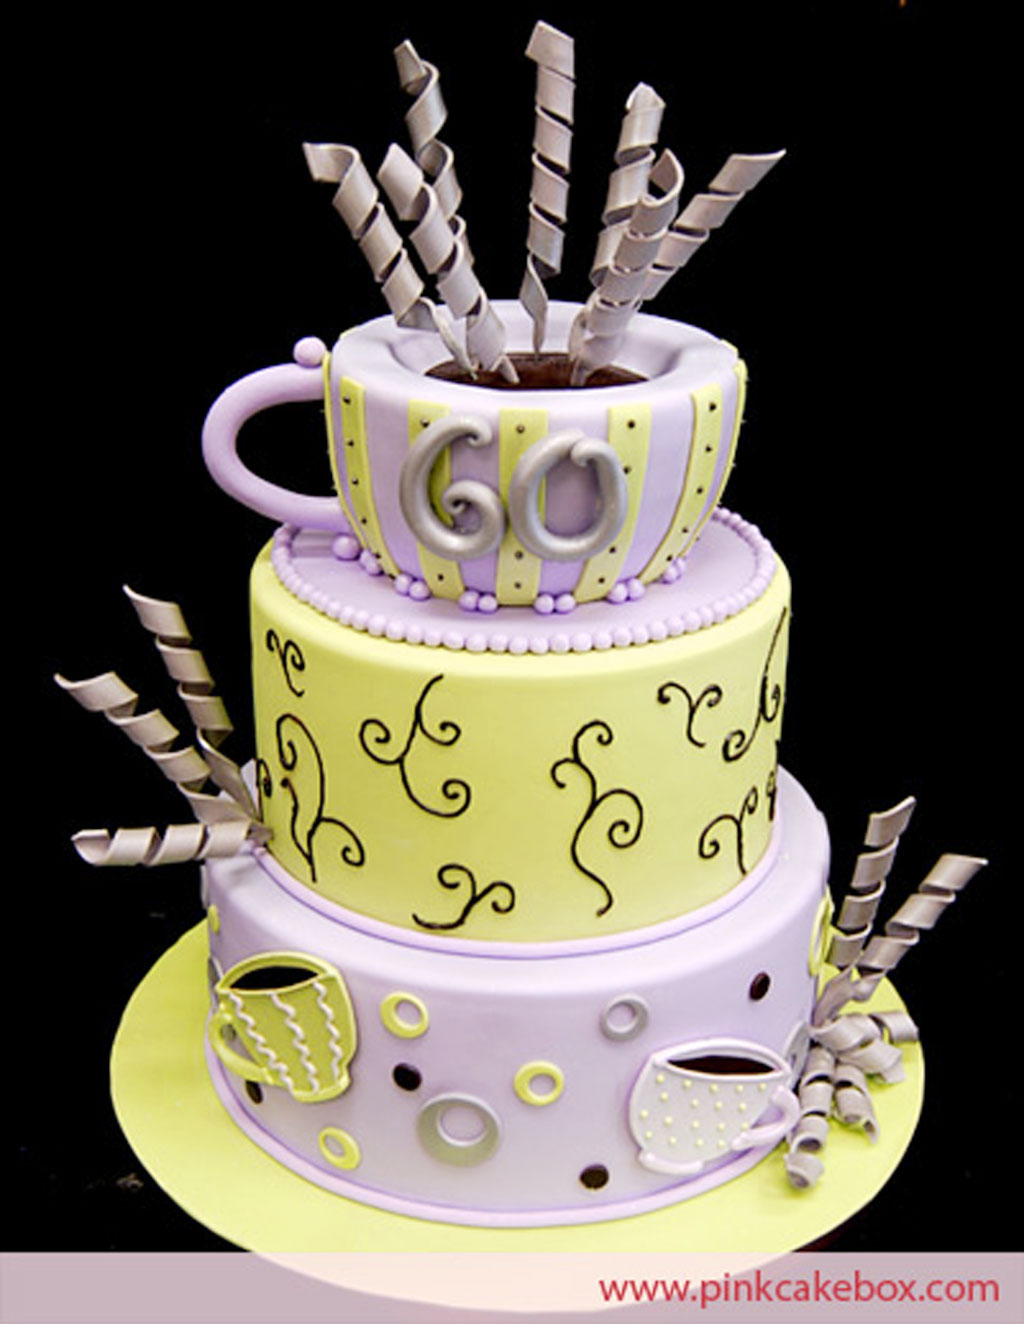 60th birthday cake ideas for women birthday cake cake